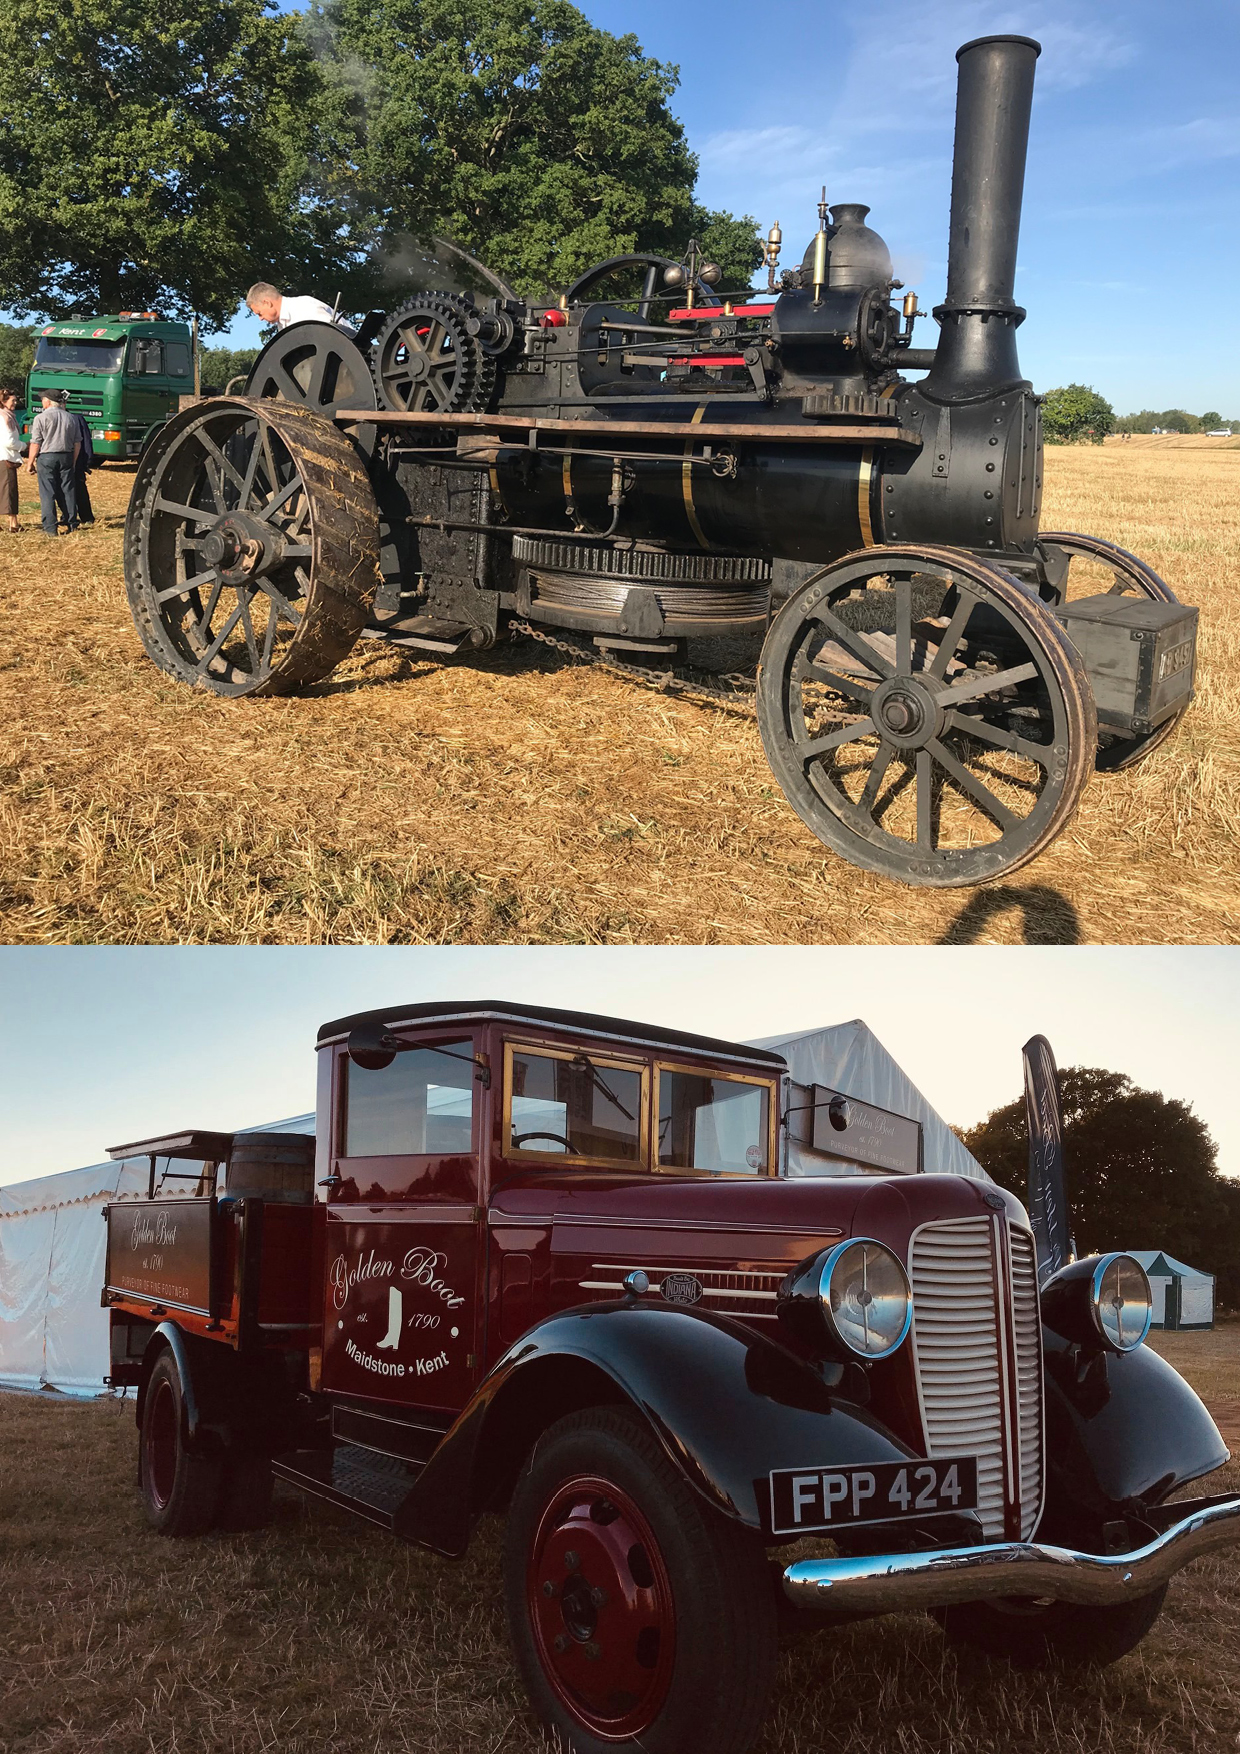 The Weald of Kent Ploughing Match '19